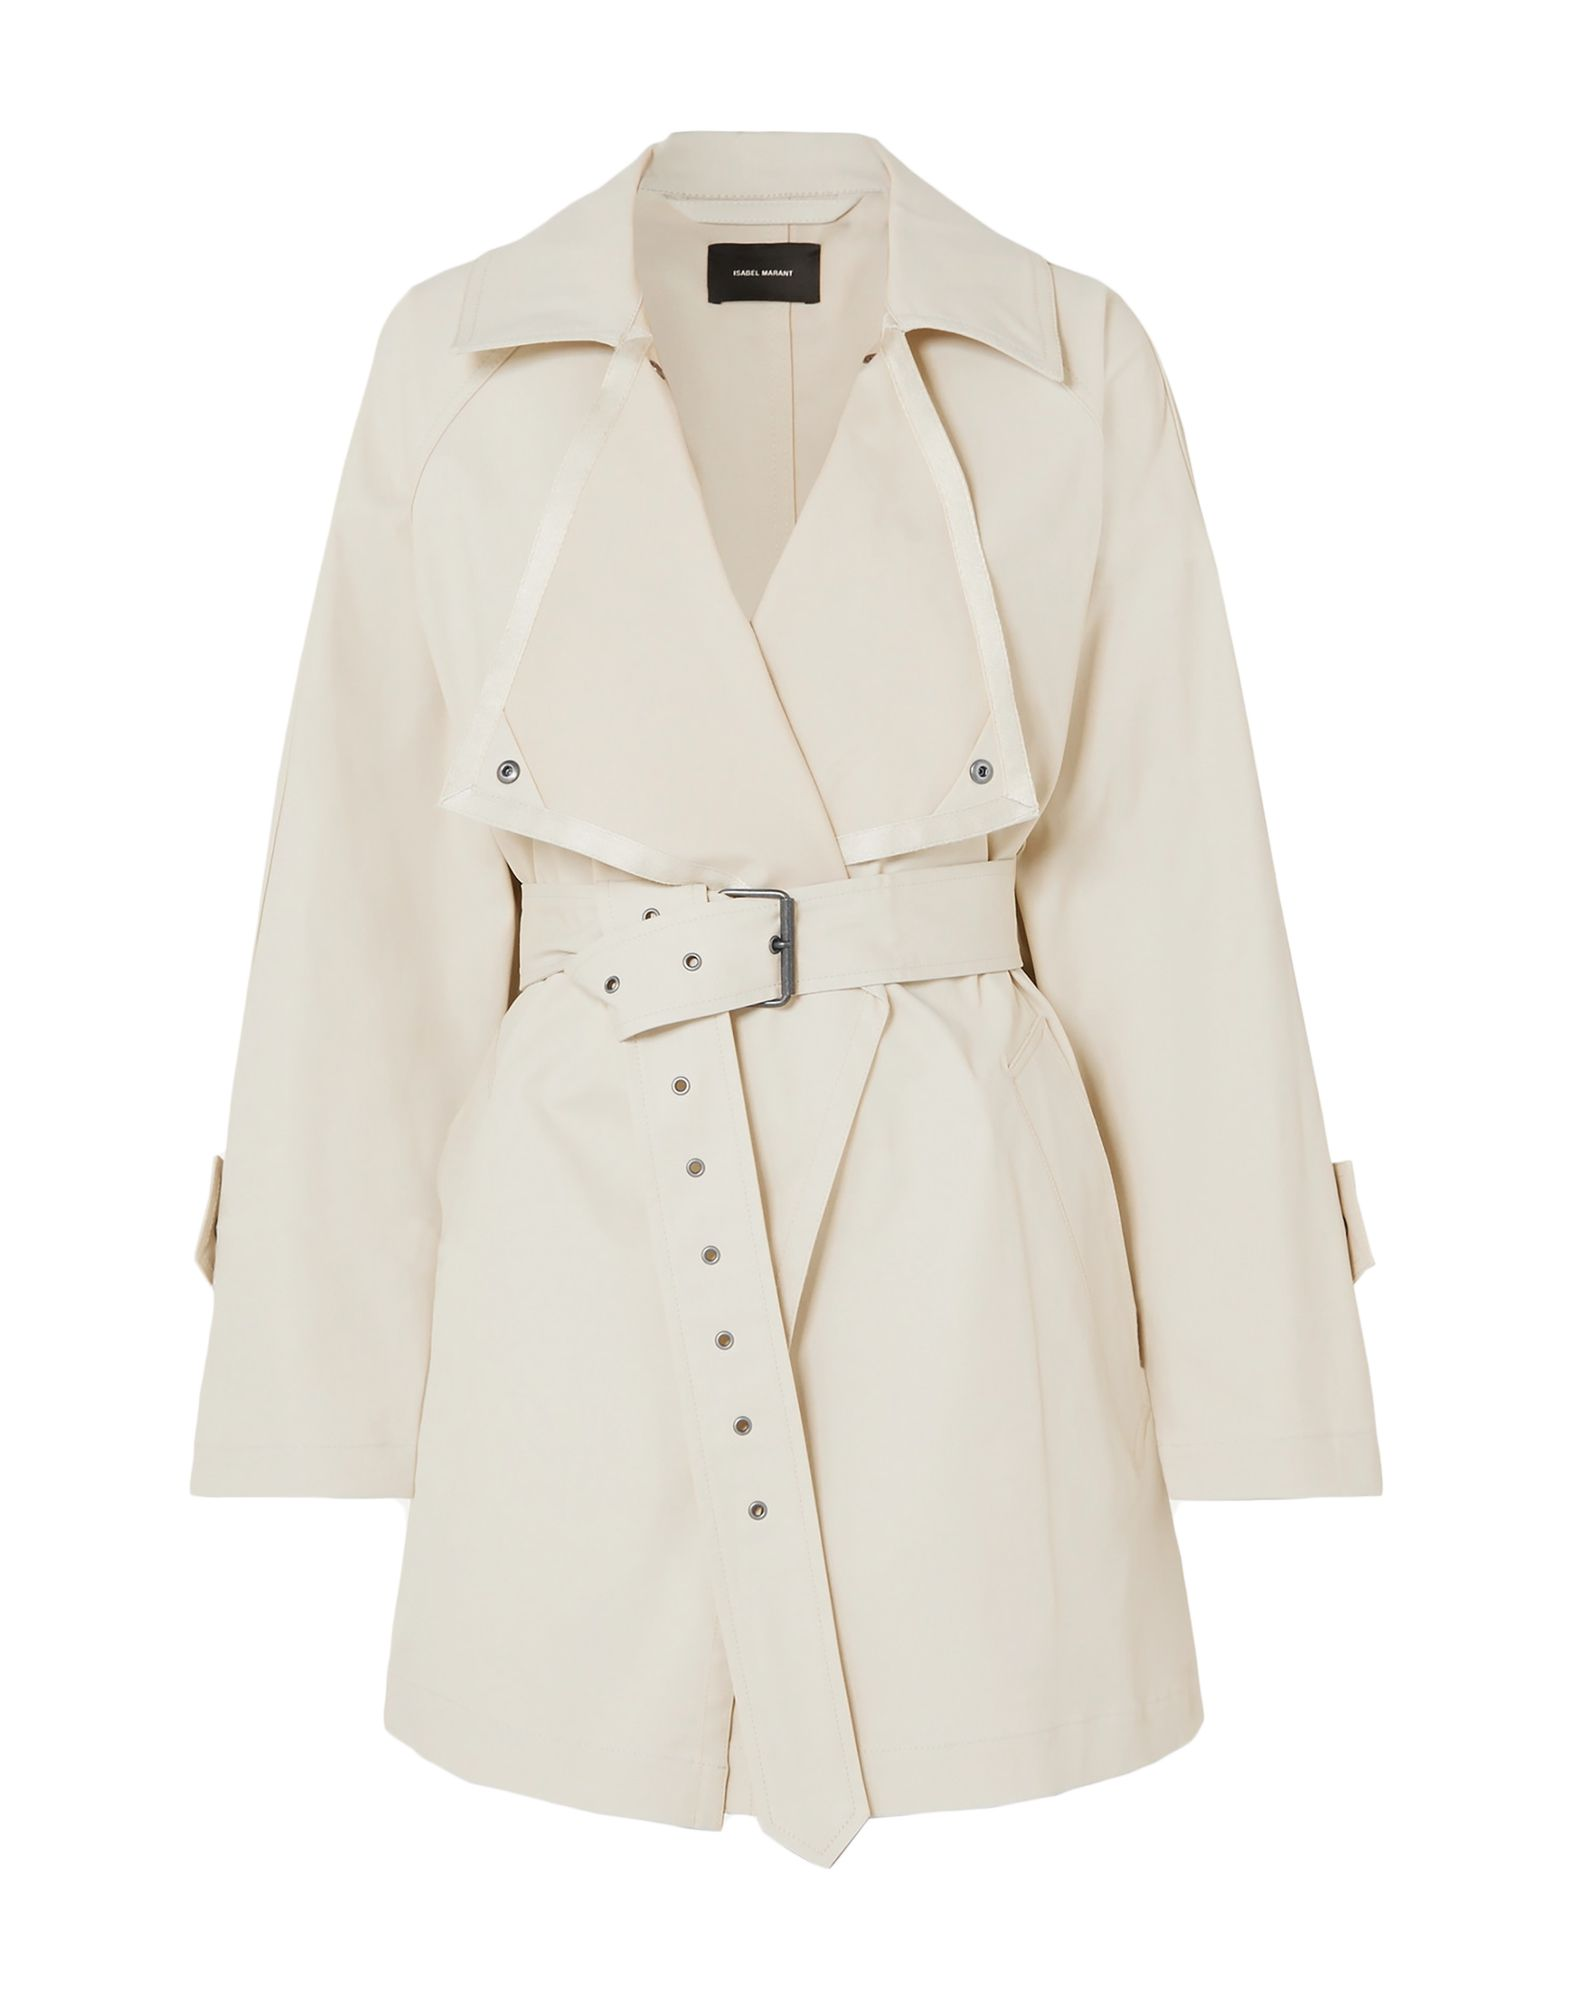 ISABEL MARANT Overcoats. plain weave, solid color, multipockets, long sleeves, unlined, single-breasted, belt, lapel collar, stretch, large sized. 97% Cotton, 3% Elastane